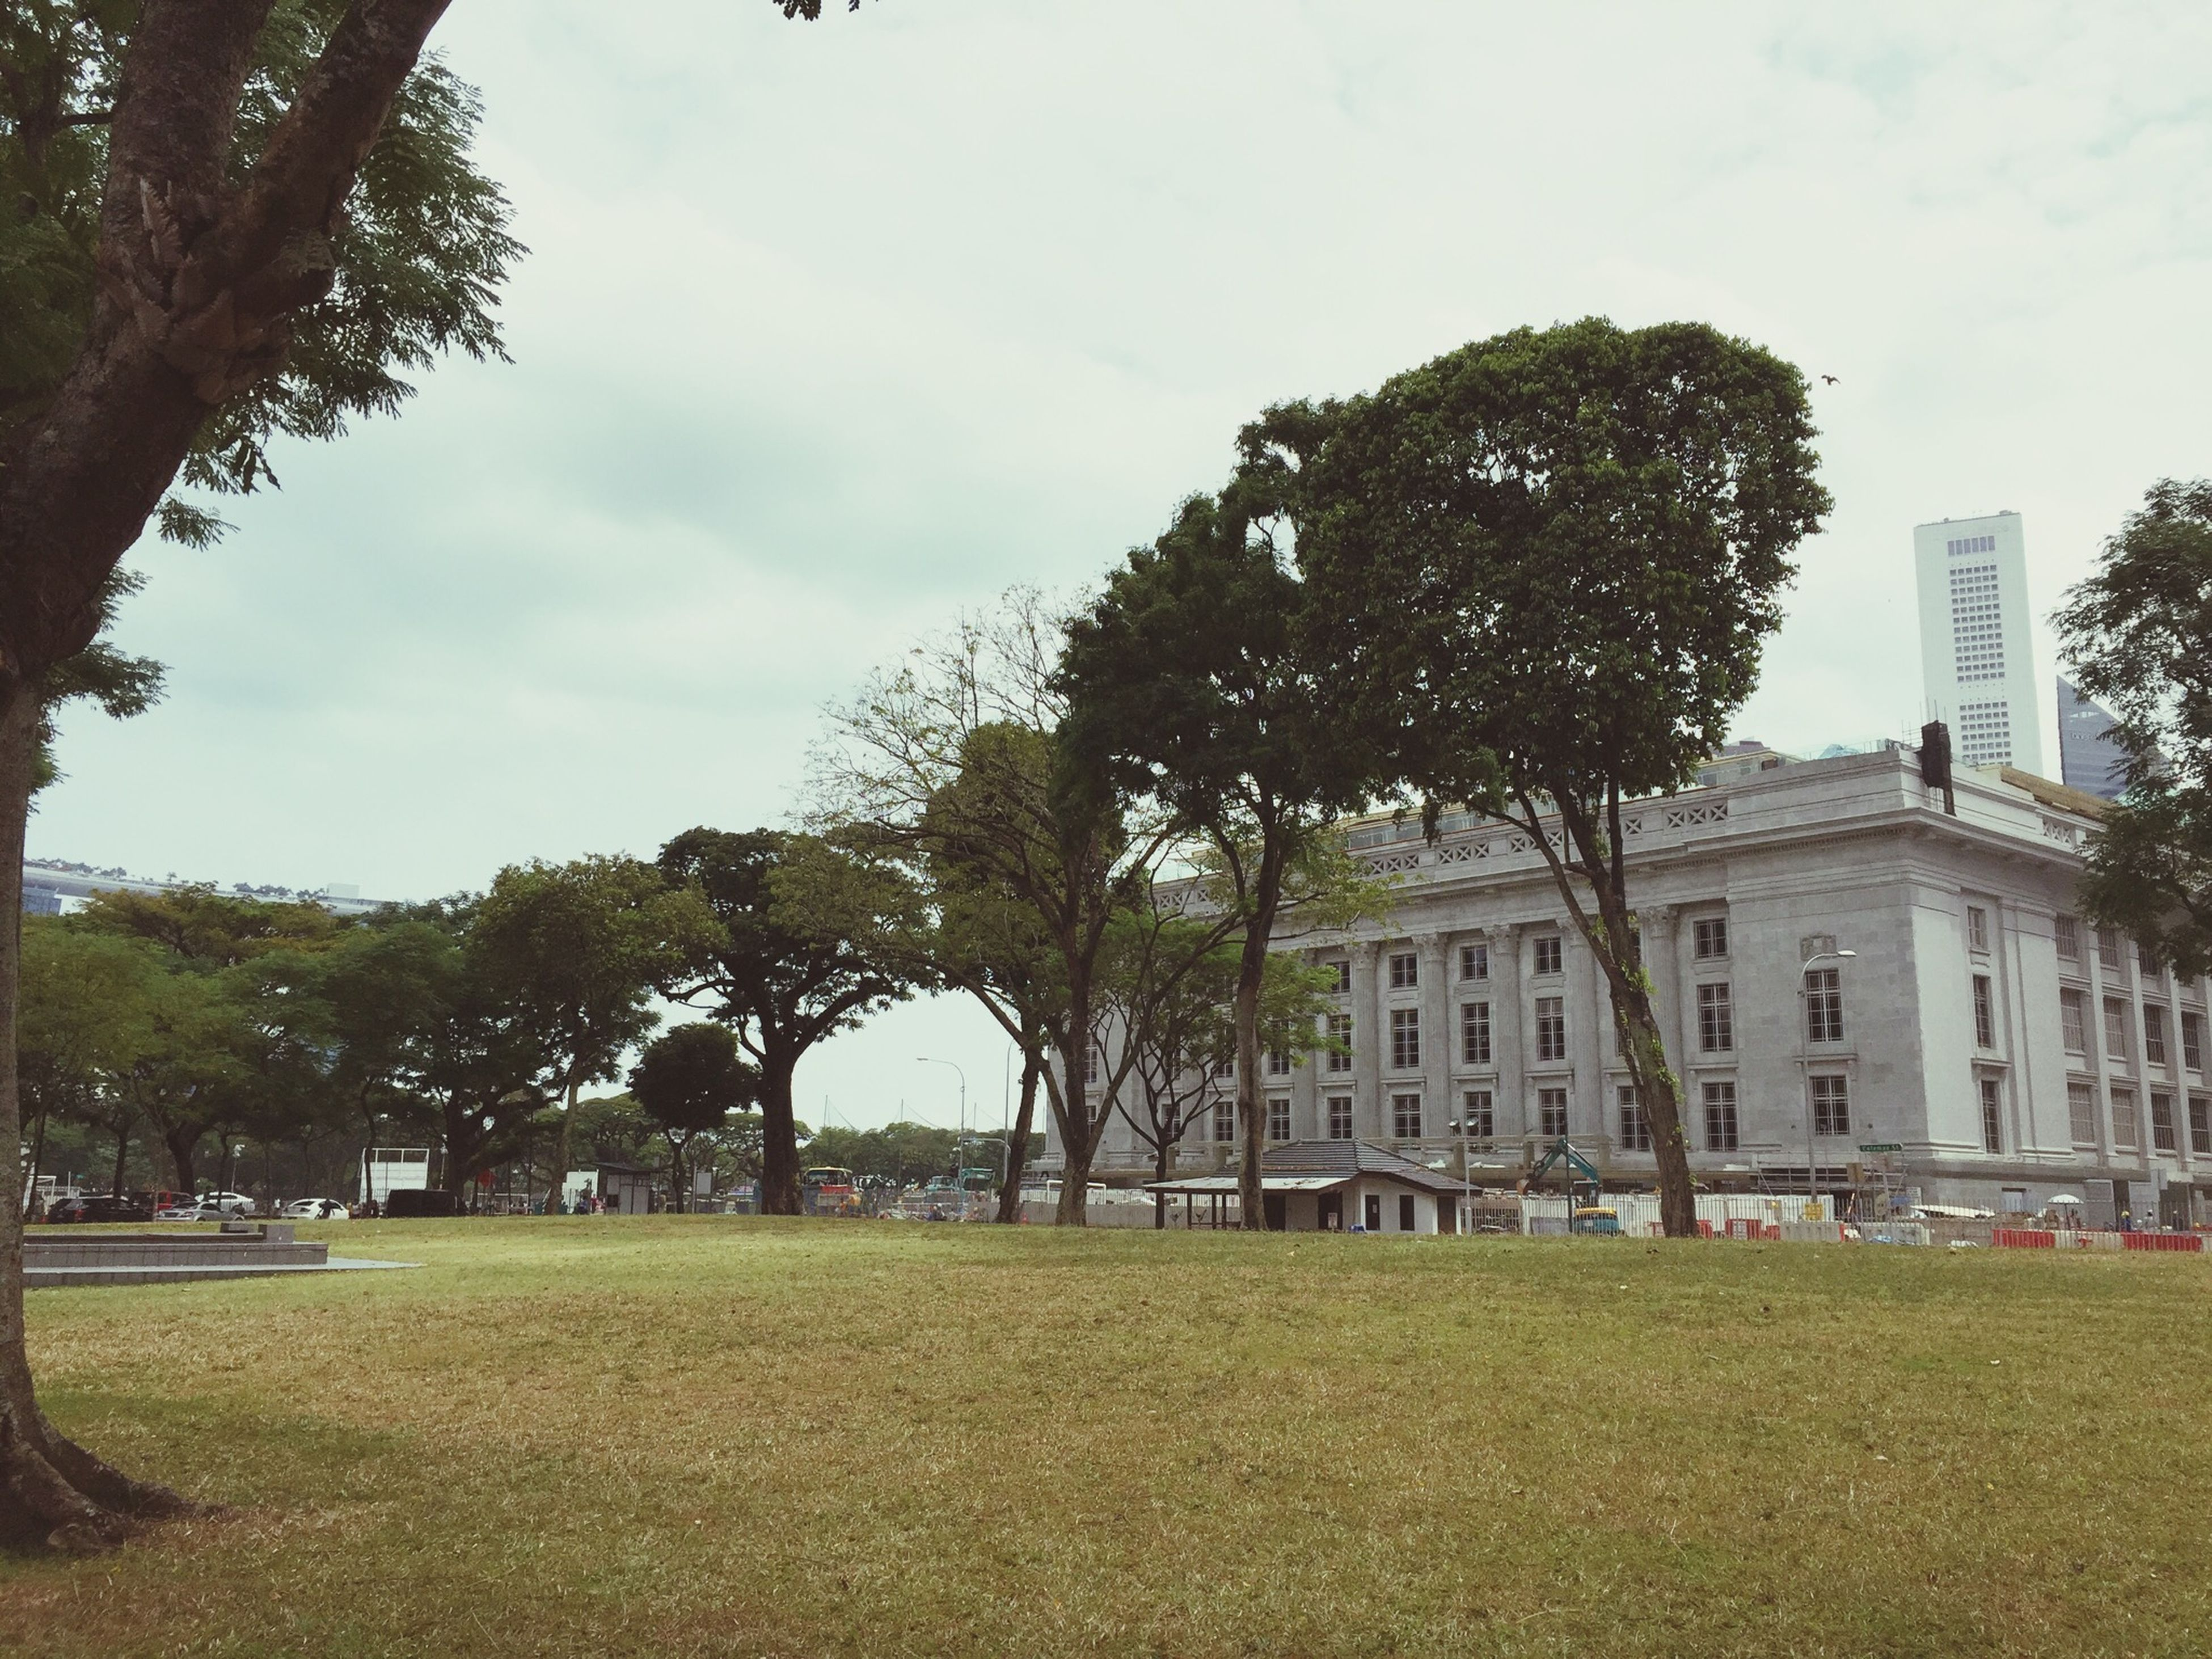 tree, architecture, building exterior, built structure, grass, sky, lawn, green color, park - man made space, cloud - sky, growth, incidental people, day, cloud, outdoors, city, facade, nature, travel destinations, building